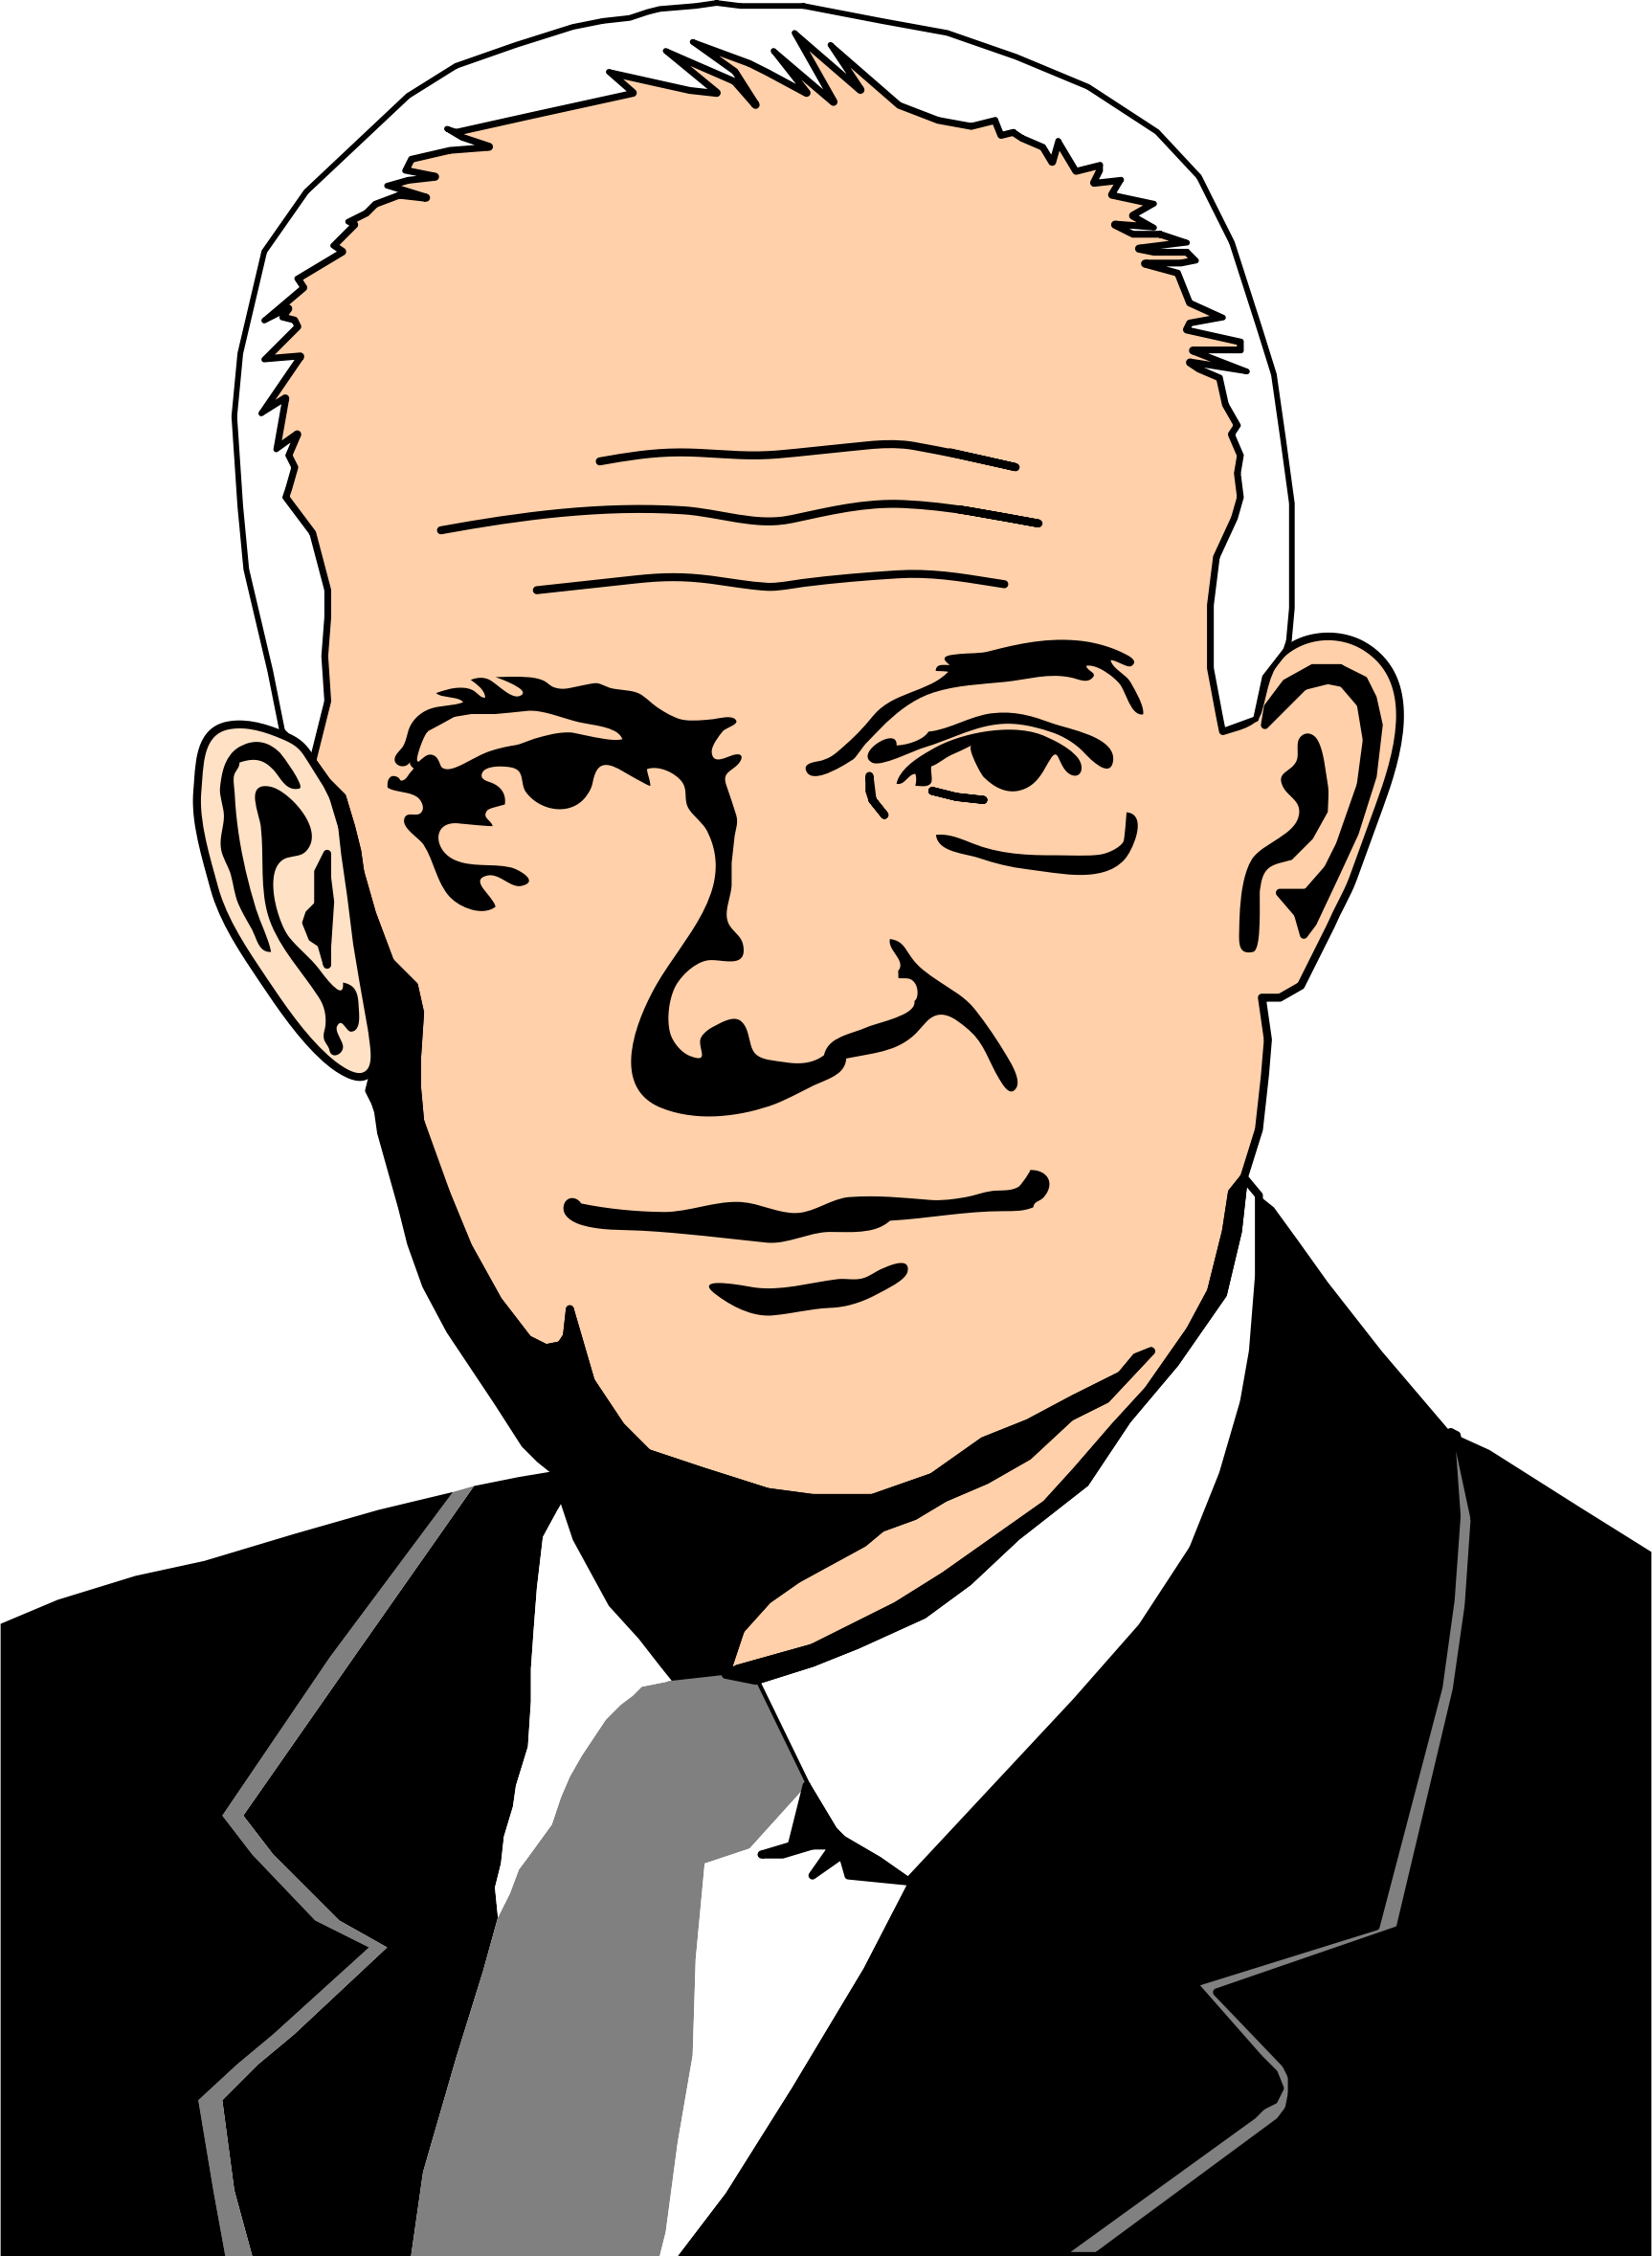 dwight d eisenhower by cactus cowboy